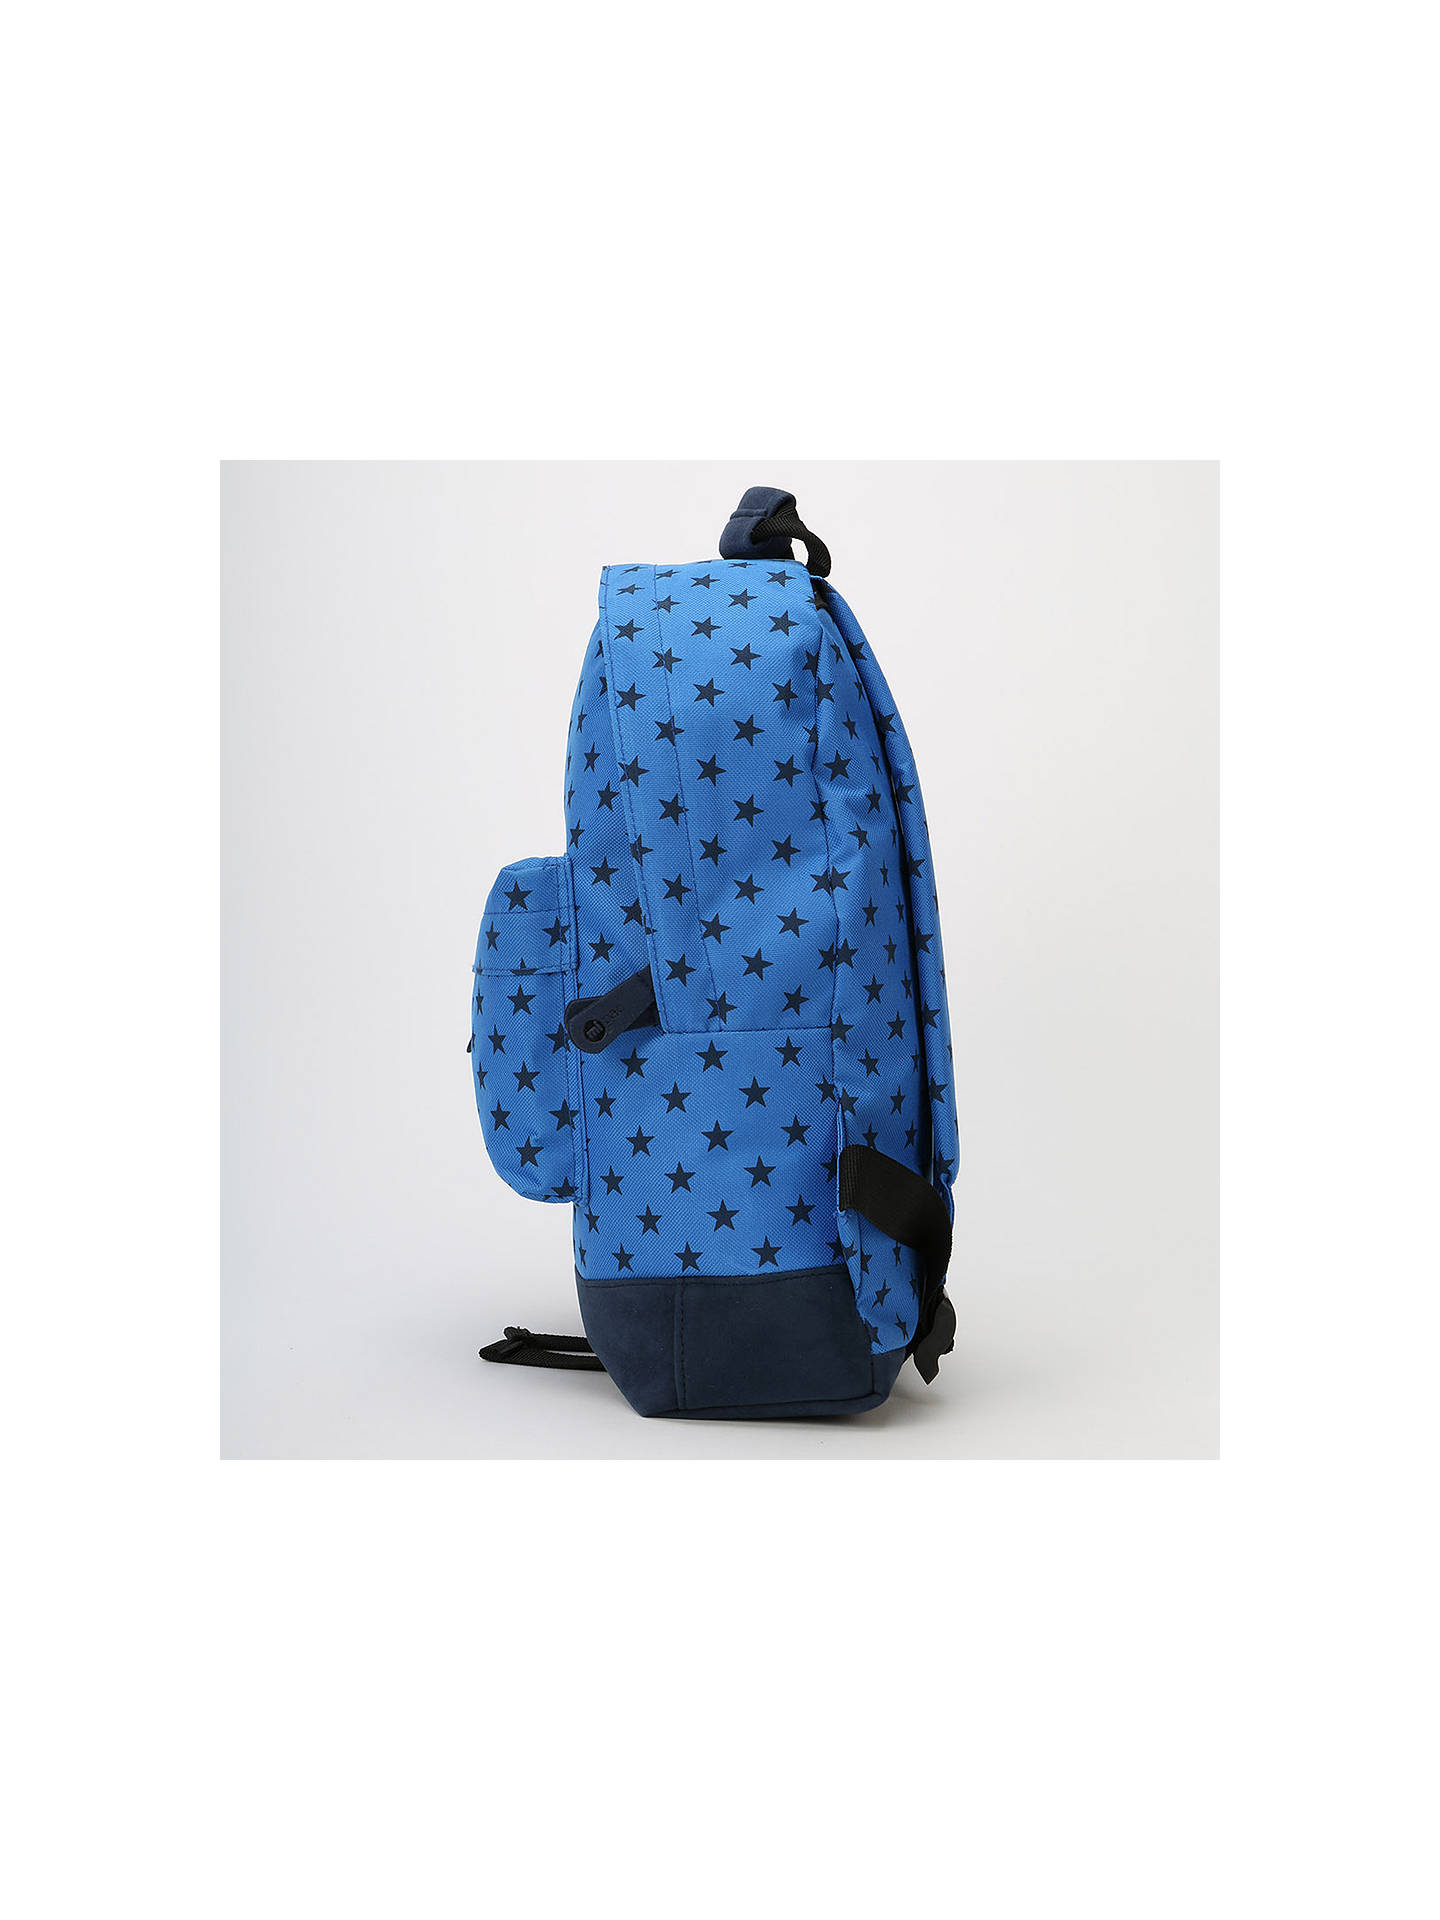 d5fb2c8a94c94 ... Buy Mi-Pac All Stars Mini Backpack, Royal Blue Online at johnlewis.com  ...